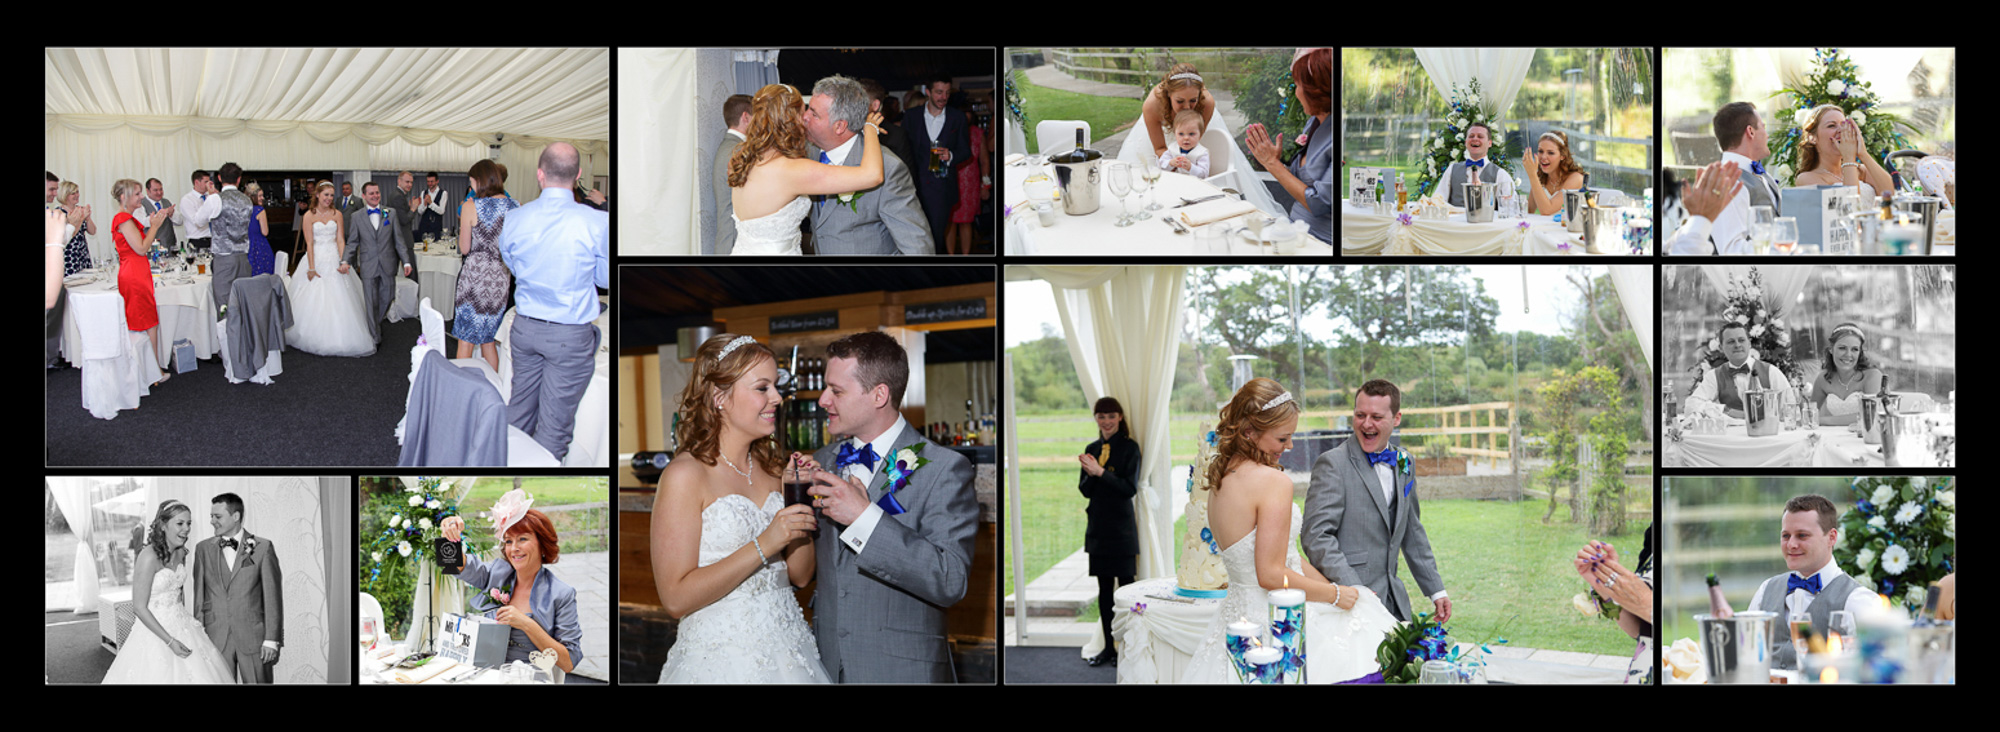 weddingjasminandrobert023.jpg